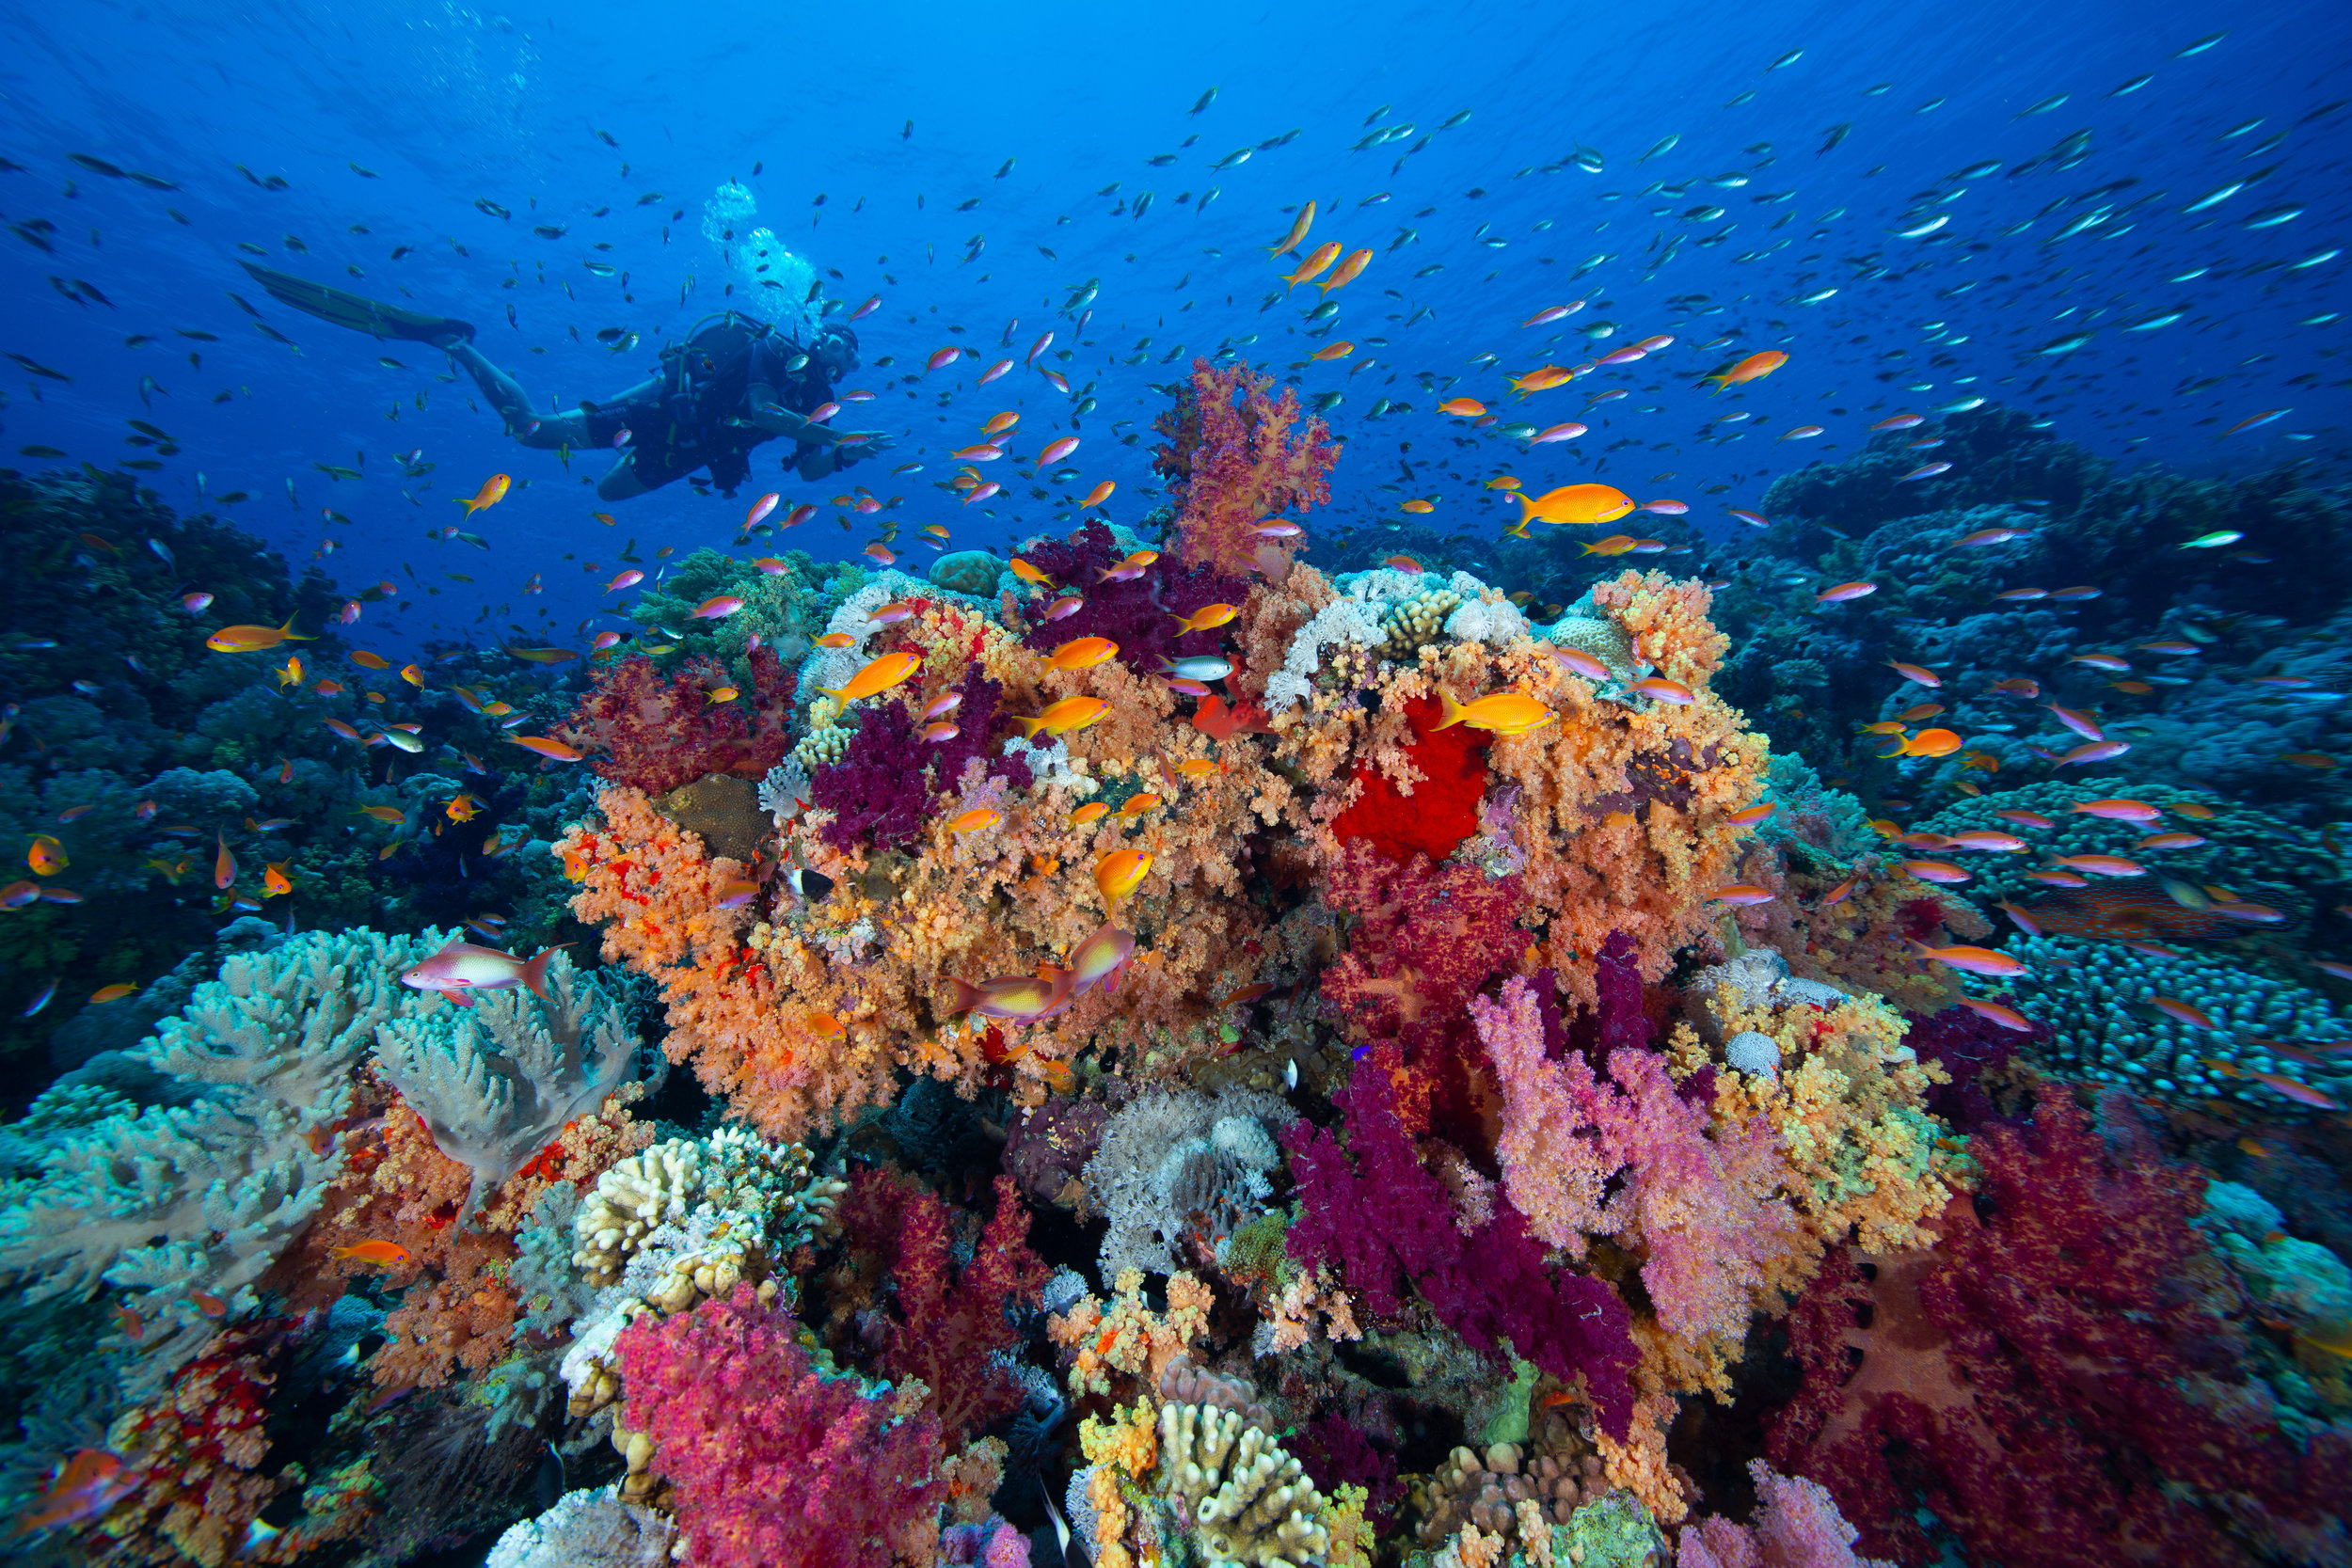 Underwater in the Red Sea, Sharm El Sheikh - Egypt - Wild Earth Expeditions